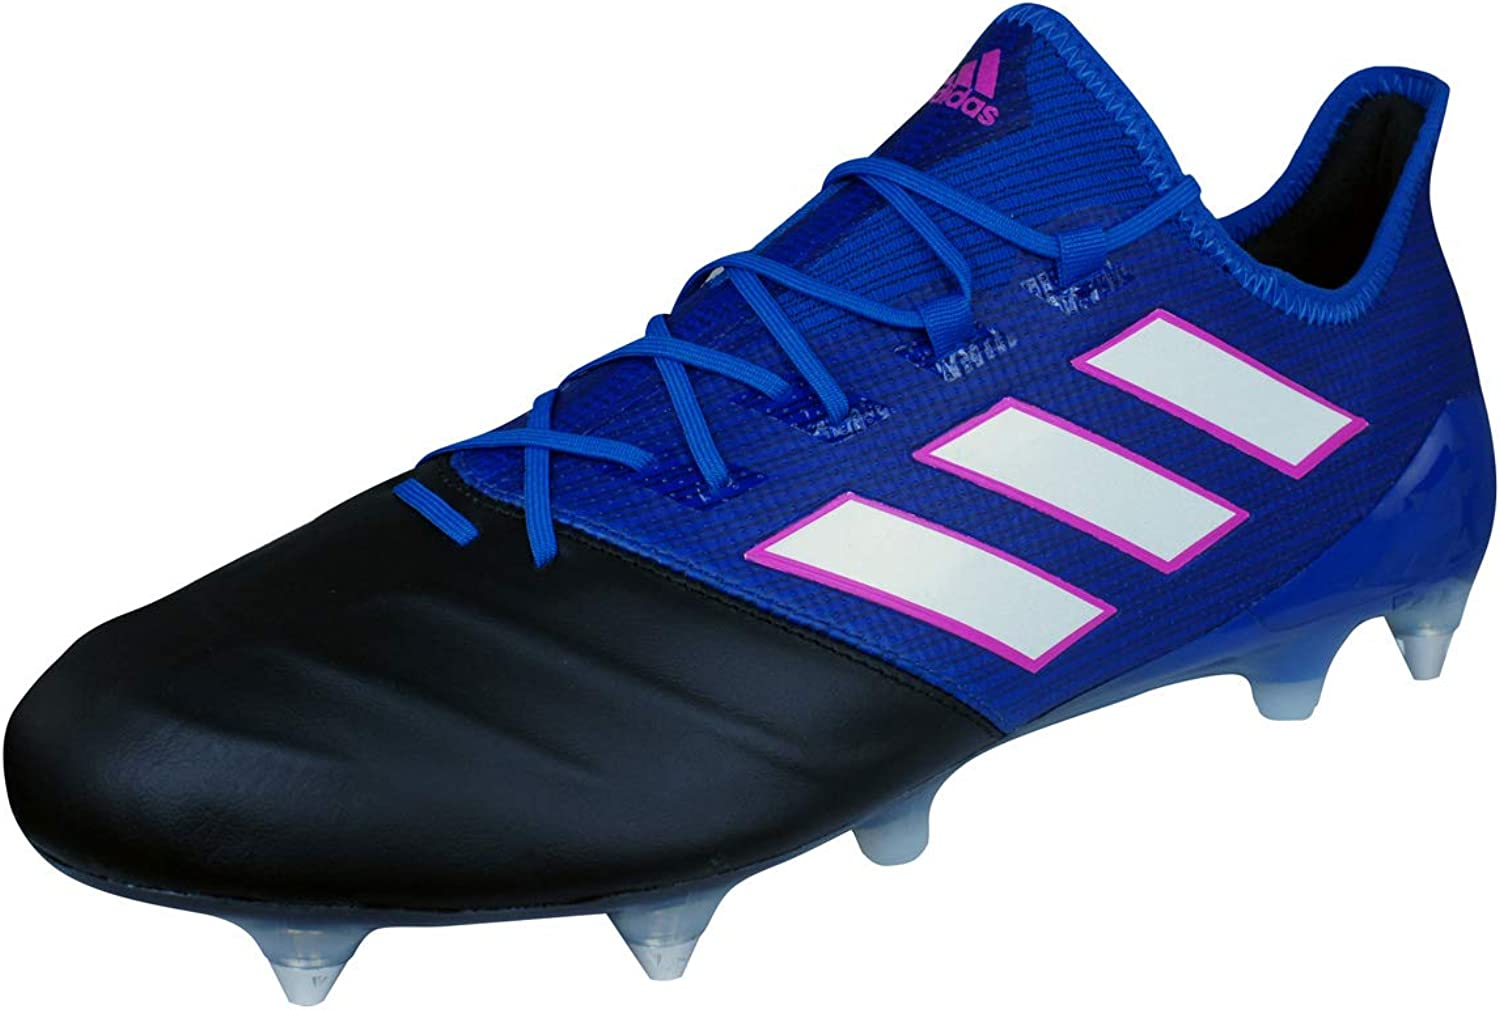 Adidas Ace 17.1 Leather SG Mens Soft Ground Soccer Boots Cleats